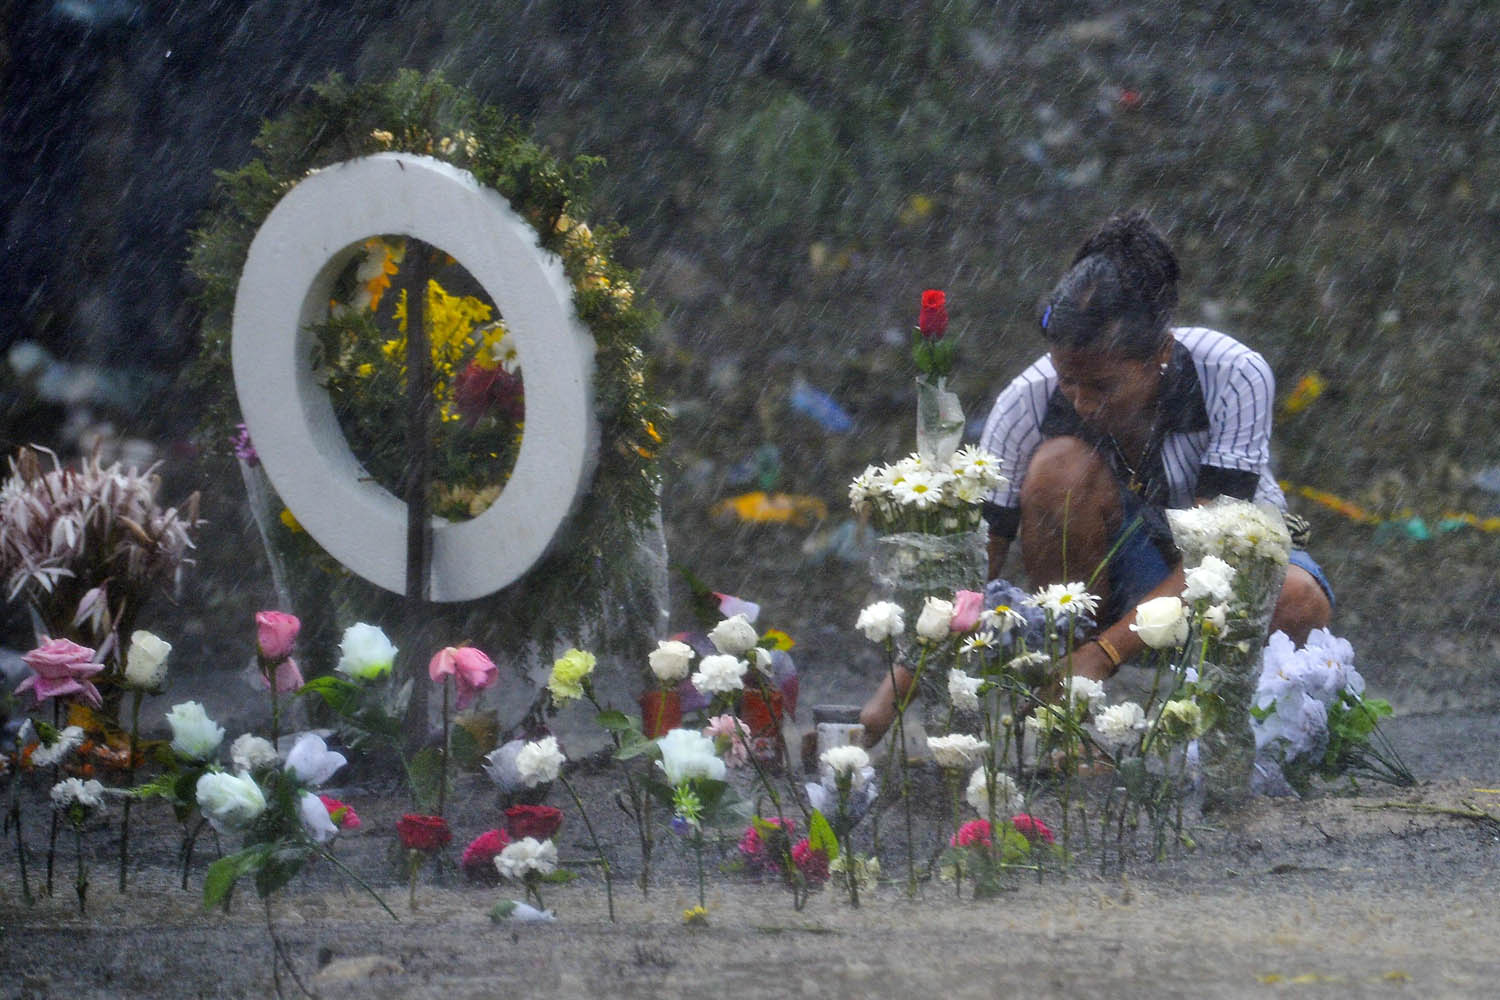 May 19, 2014.                                A relative lays flowers in honor of the 32 chlidren burnt to death inside a school bus in Fundacion, department of Magdalena, Colombia.